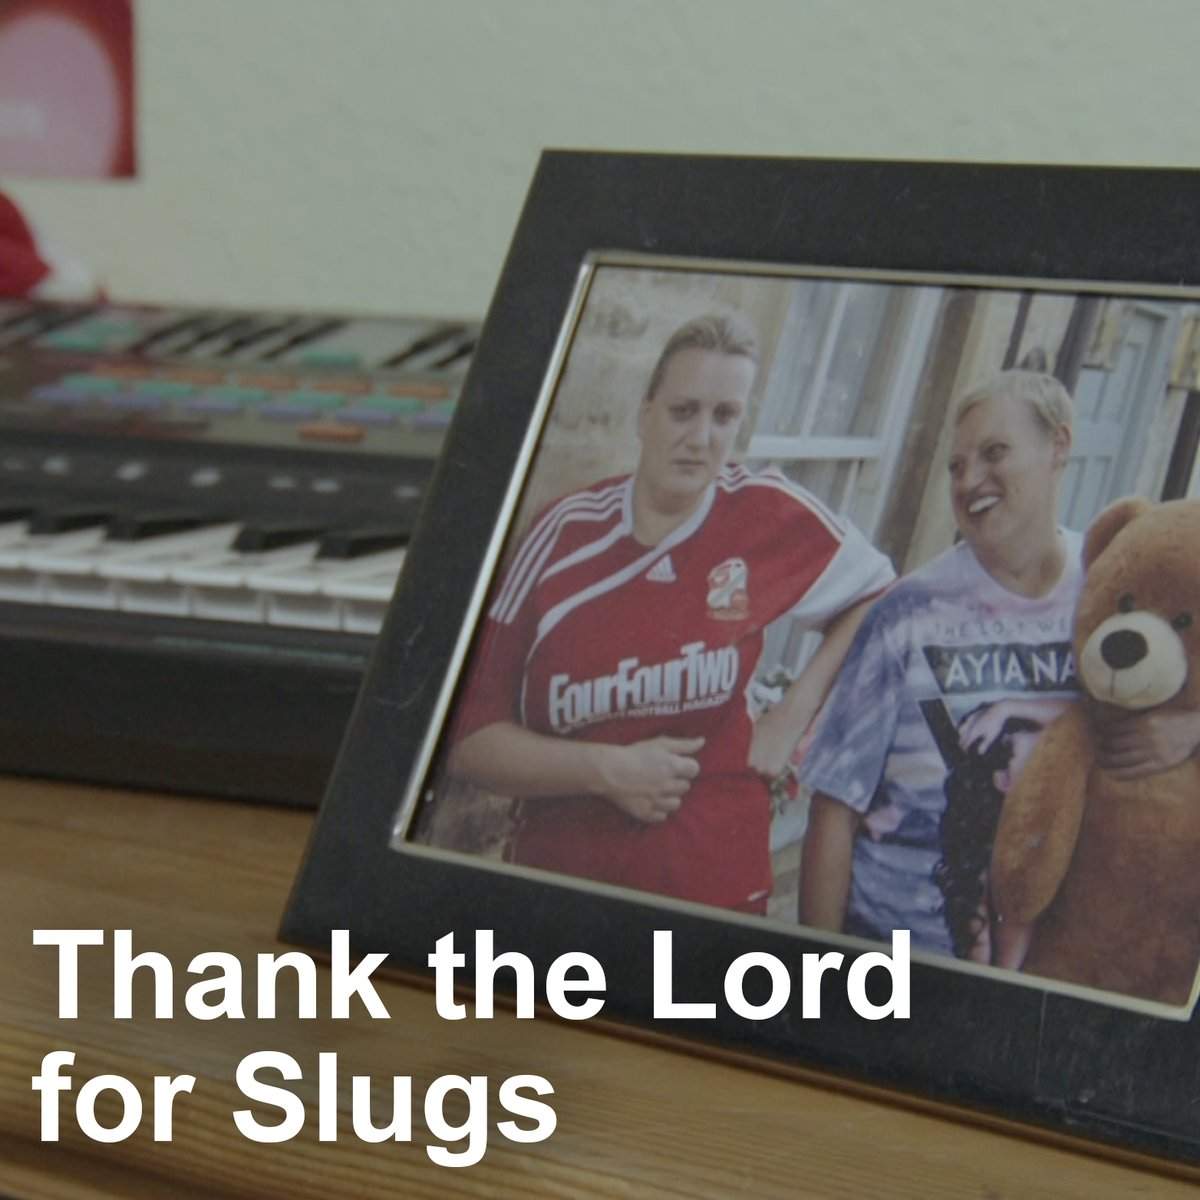 It's one year today since Michael Sleggs passed. Thinking of you, Slugs.